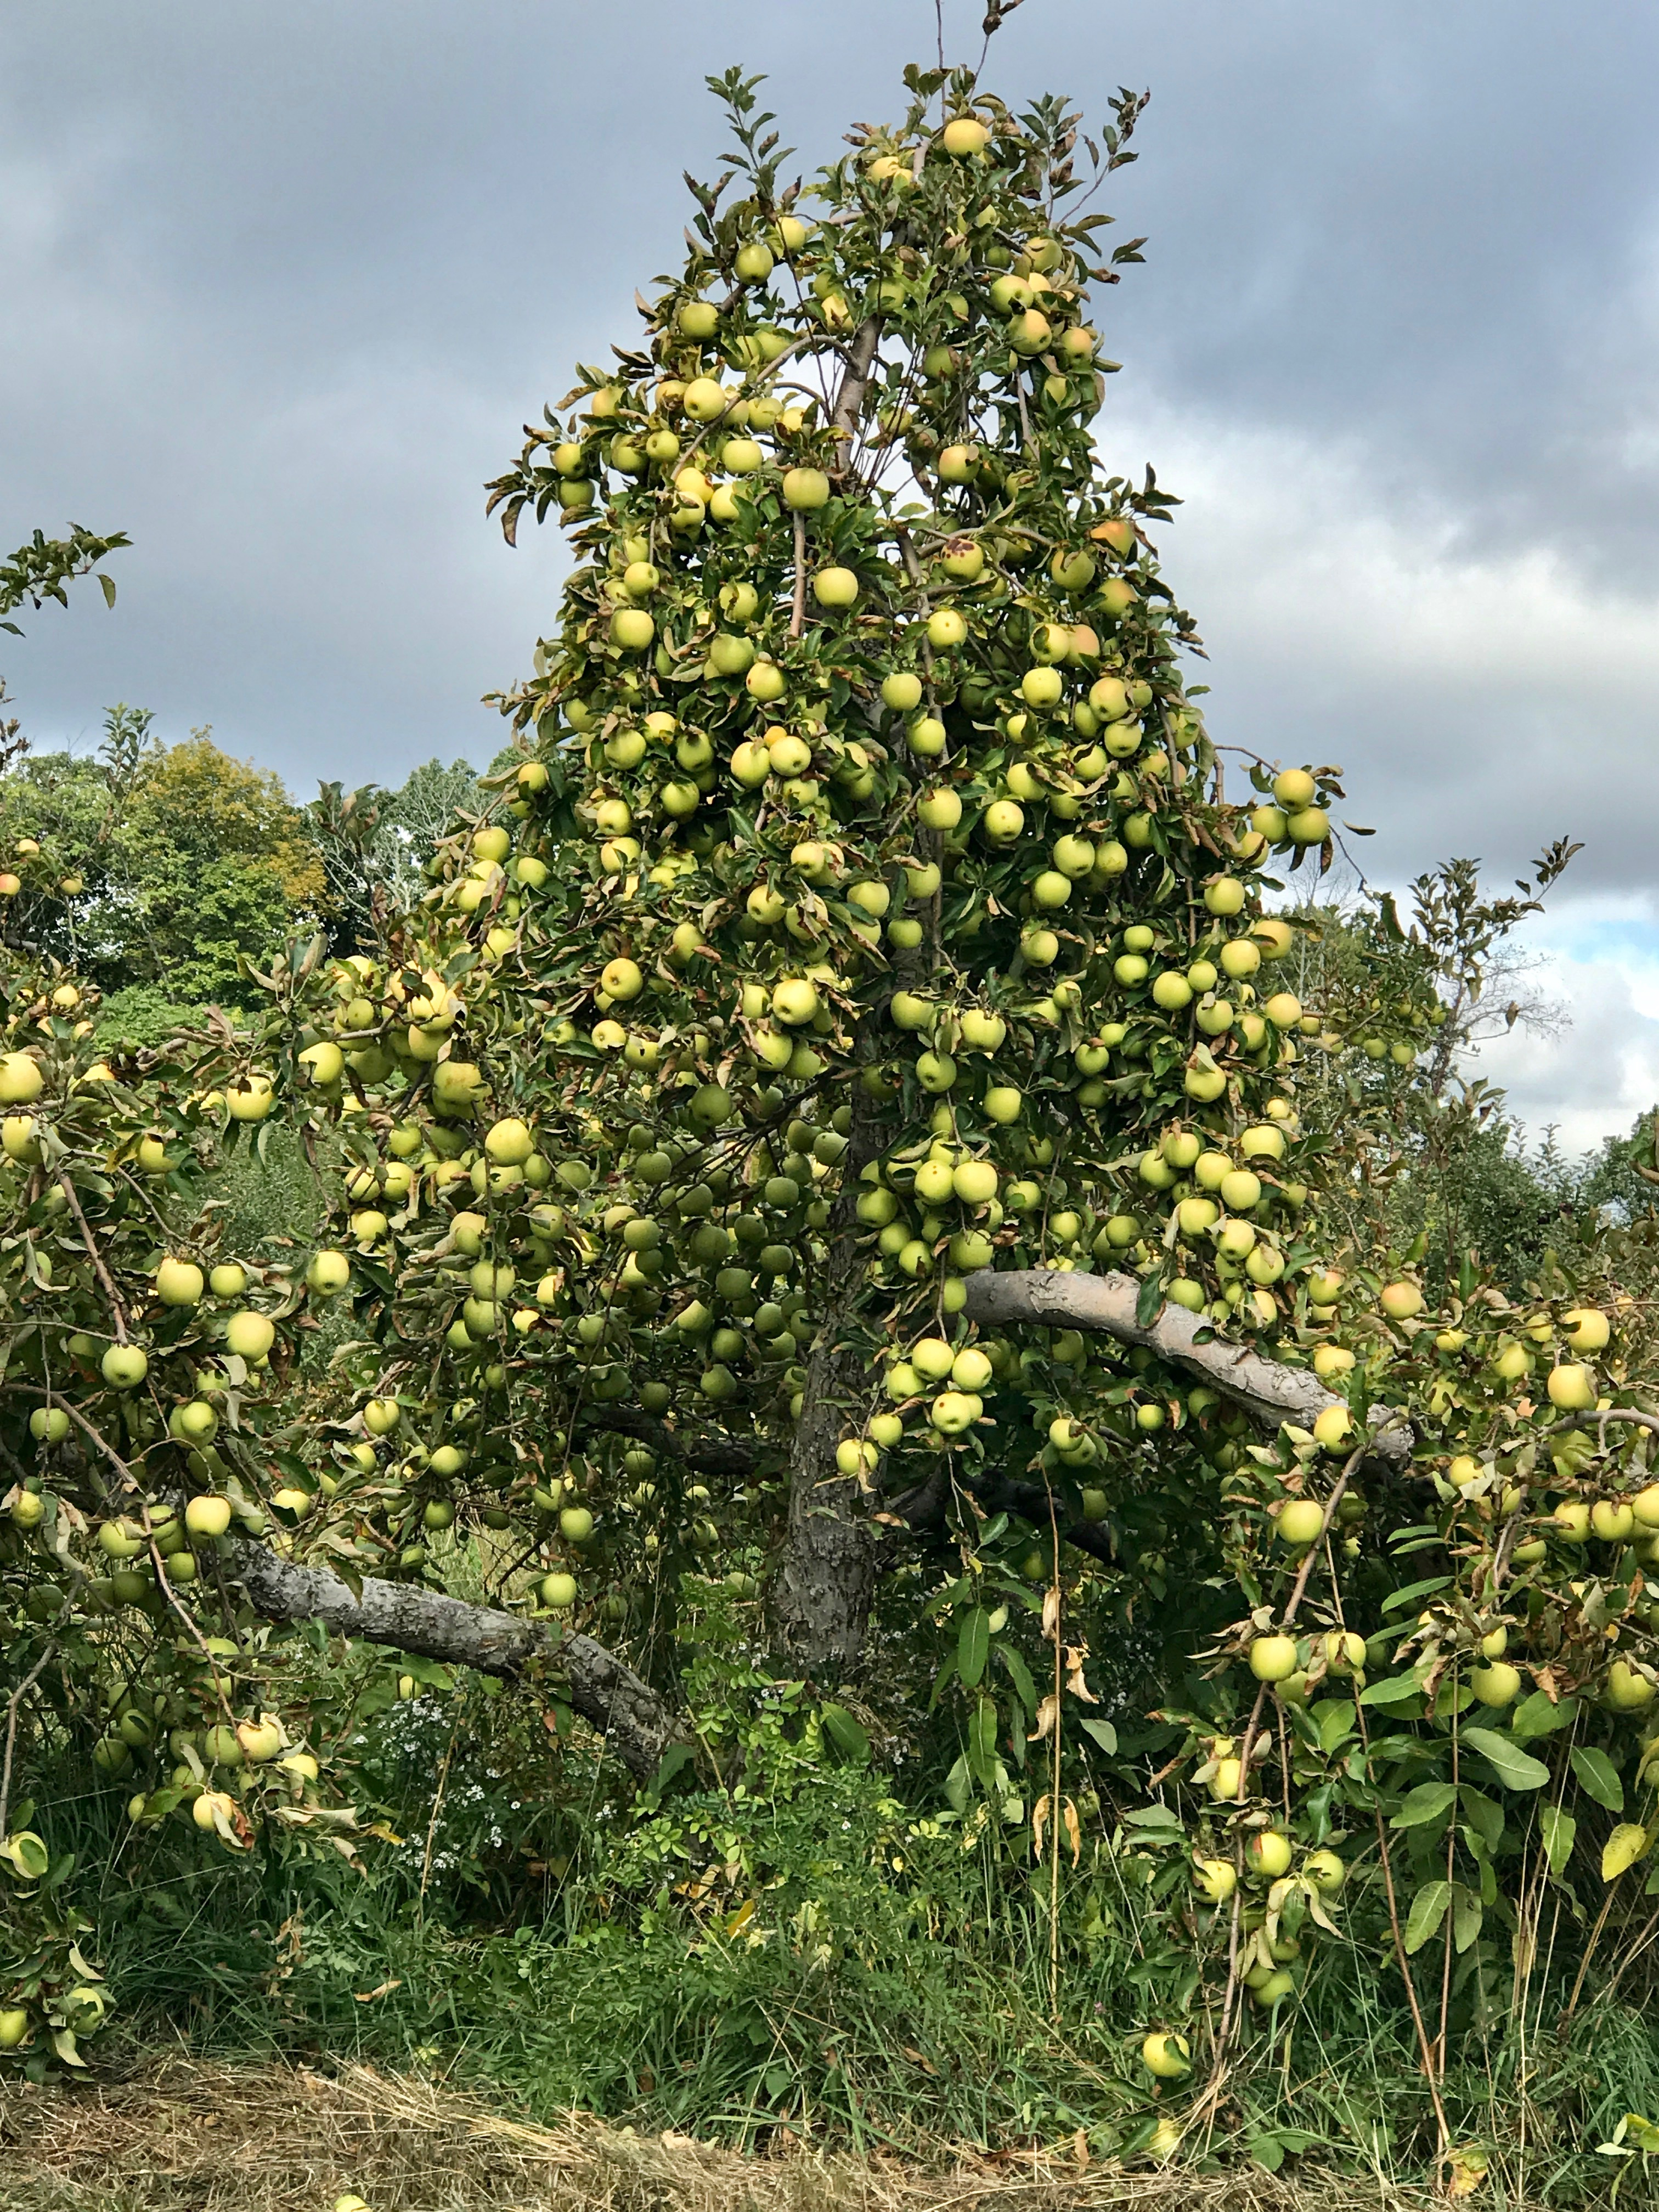 Apples on Tree for picking